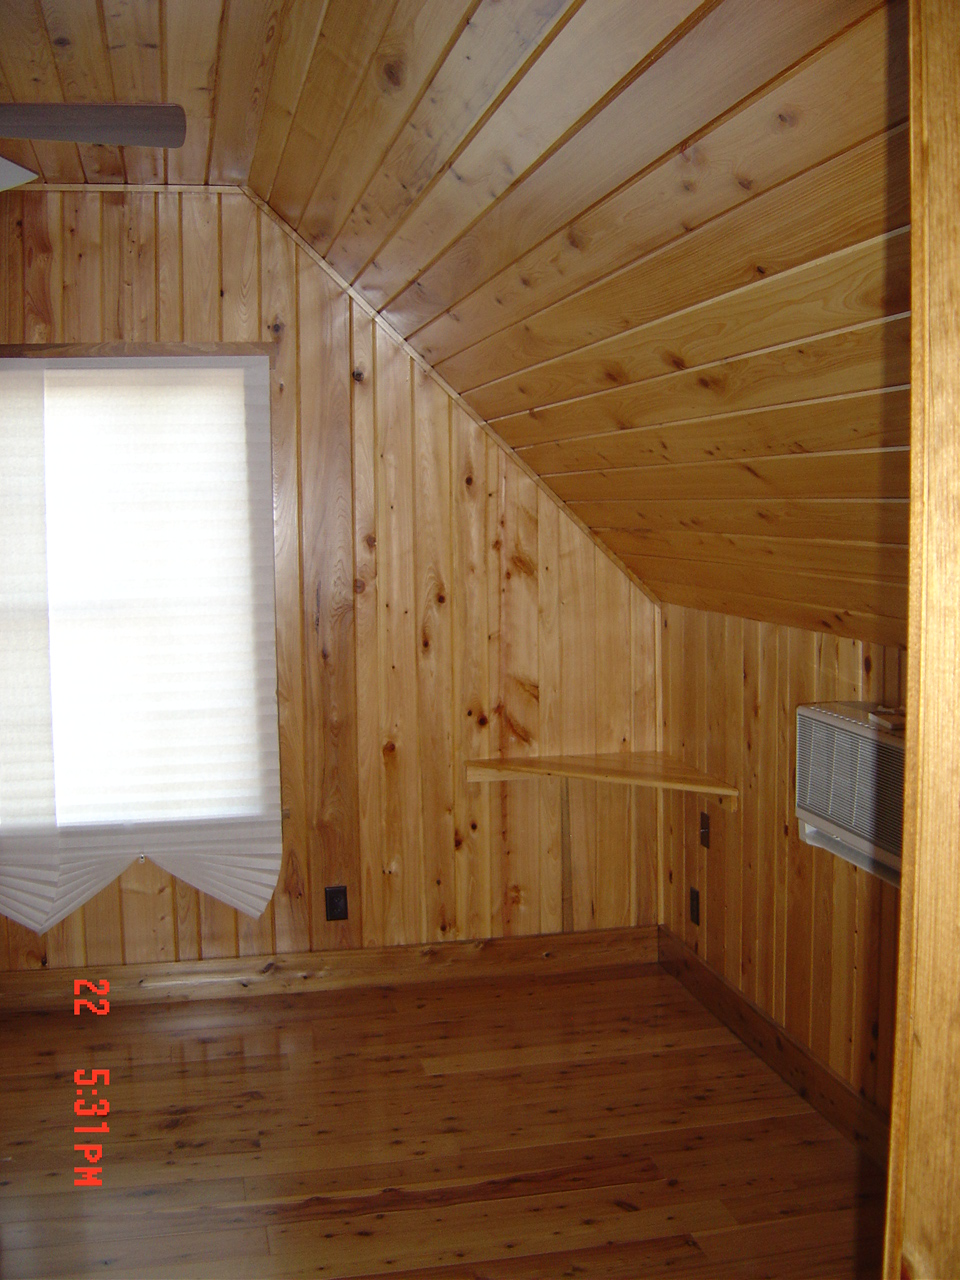 interior uses of cypress lumber paneling tongue and groove gallery wilson lumber company